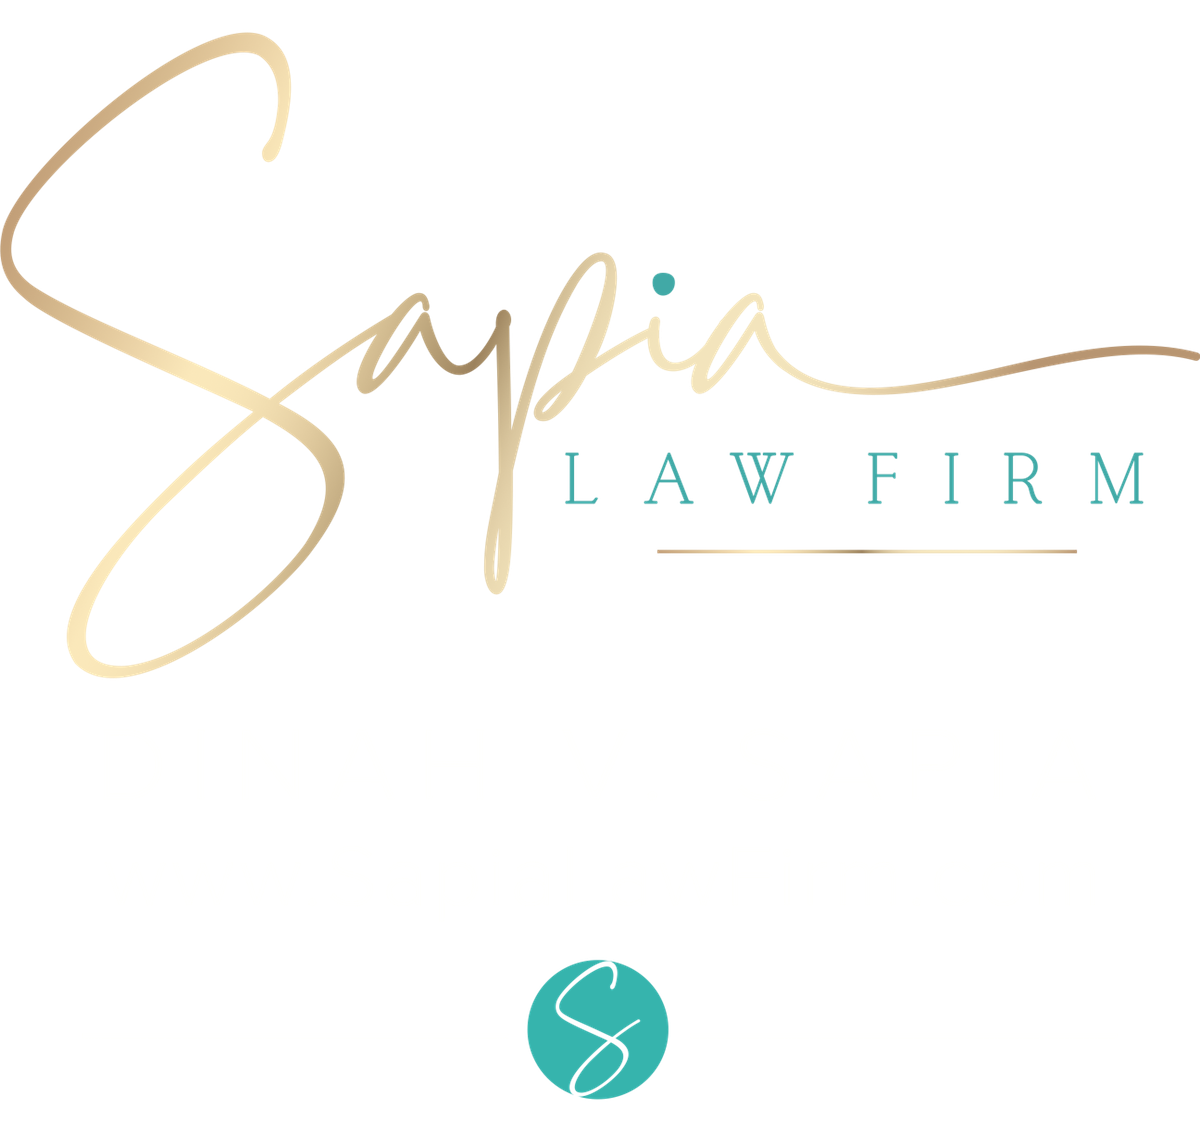 Sapia law firm signage